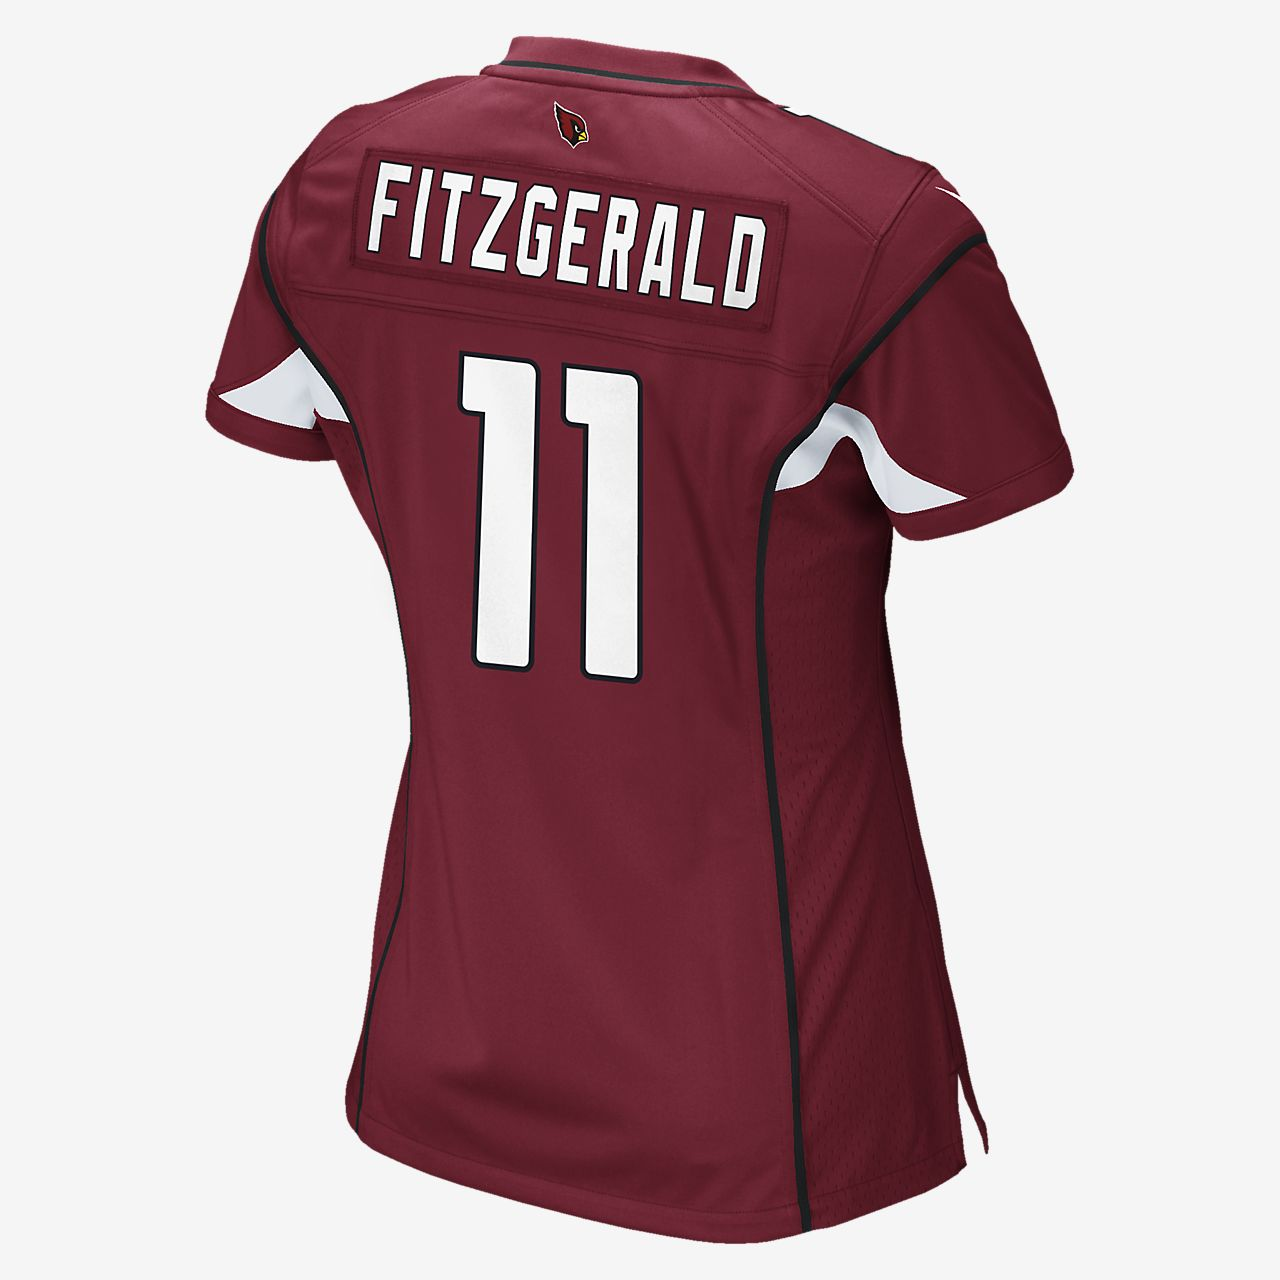 ddb0b3e81397 ... NFL Arizona Cardinals (Larry Fitzgerald) Women s Football Home Game  Jersey